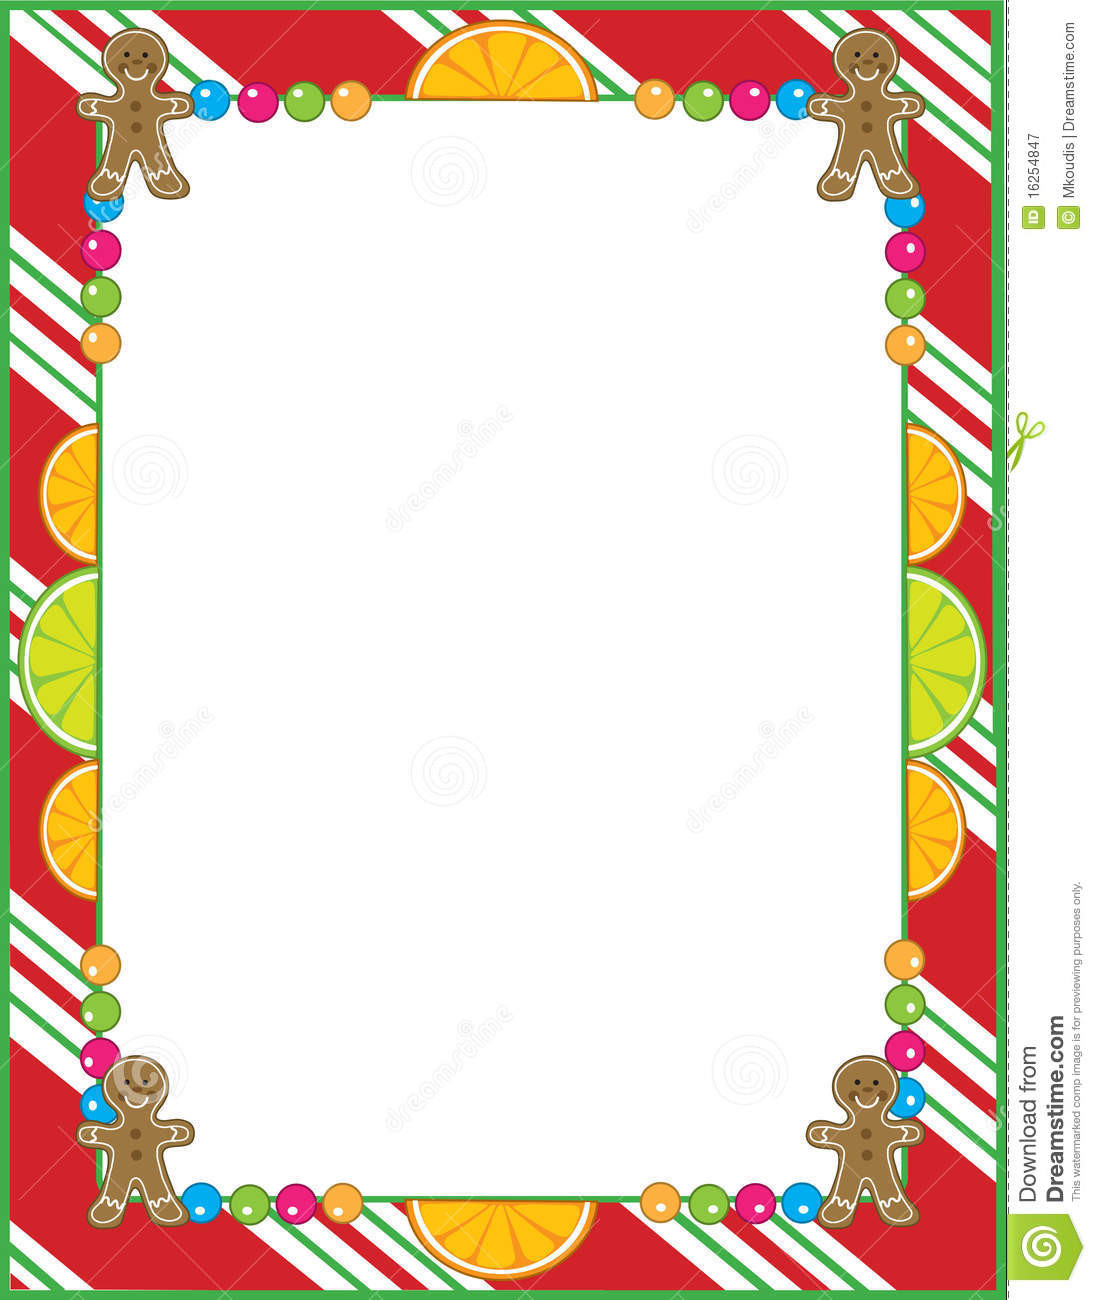 Christmas Candy Border  Christmas Candy Border Royalty Free Stock graphy